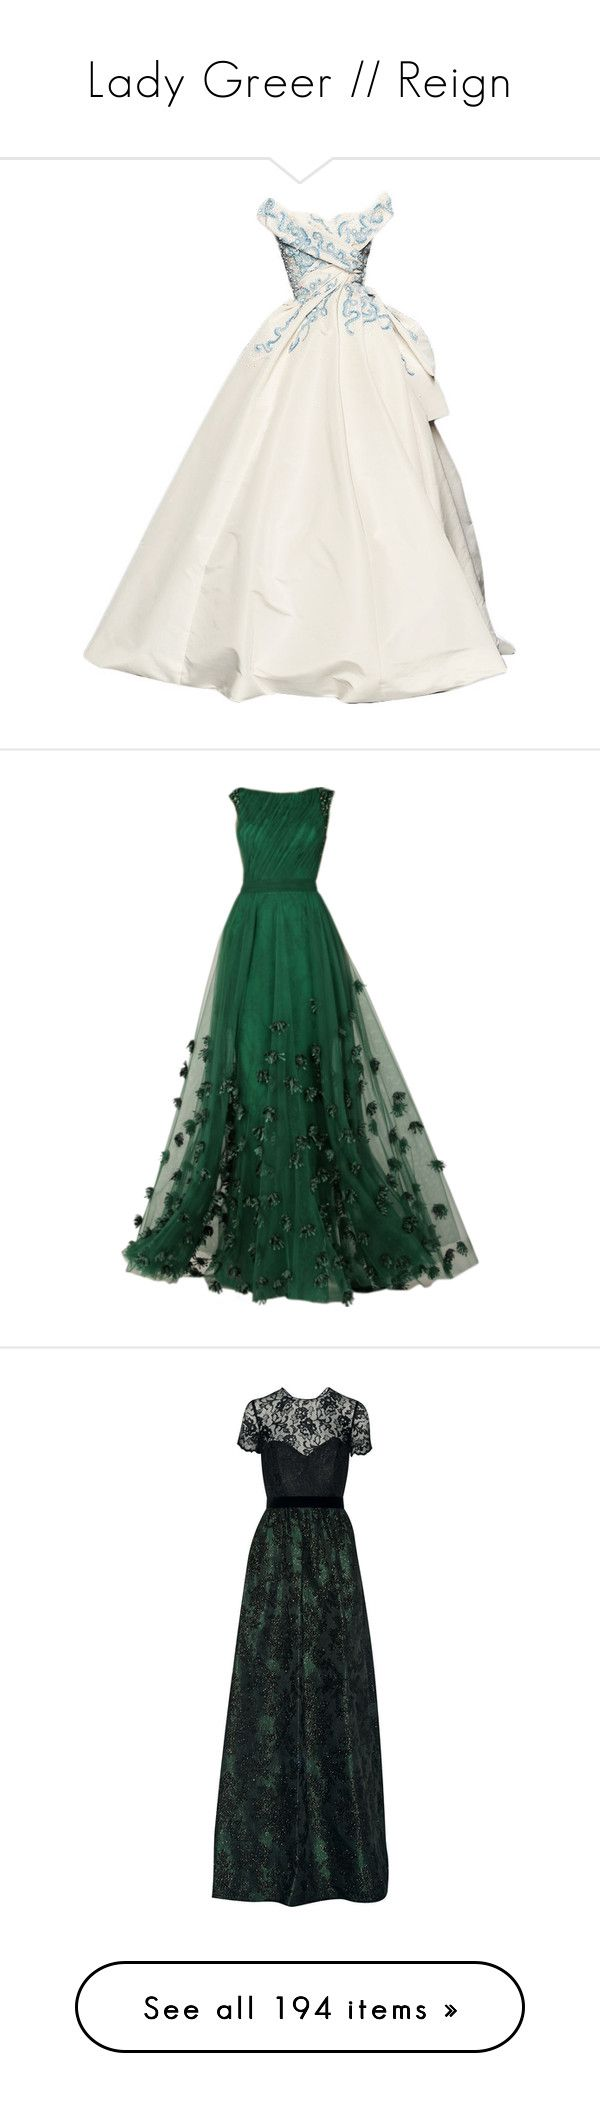 """""""Lady Greer // Reign"""" by ashton-kate ❤ liked on Polyvore featuring Reign, LadyGreer, dresses, gowns, long dresses, vestidos, green evening gown, couture dresses, couture gowns and long green evening dress"""